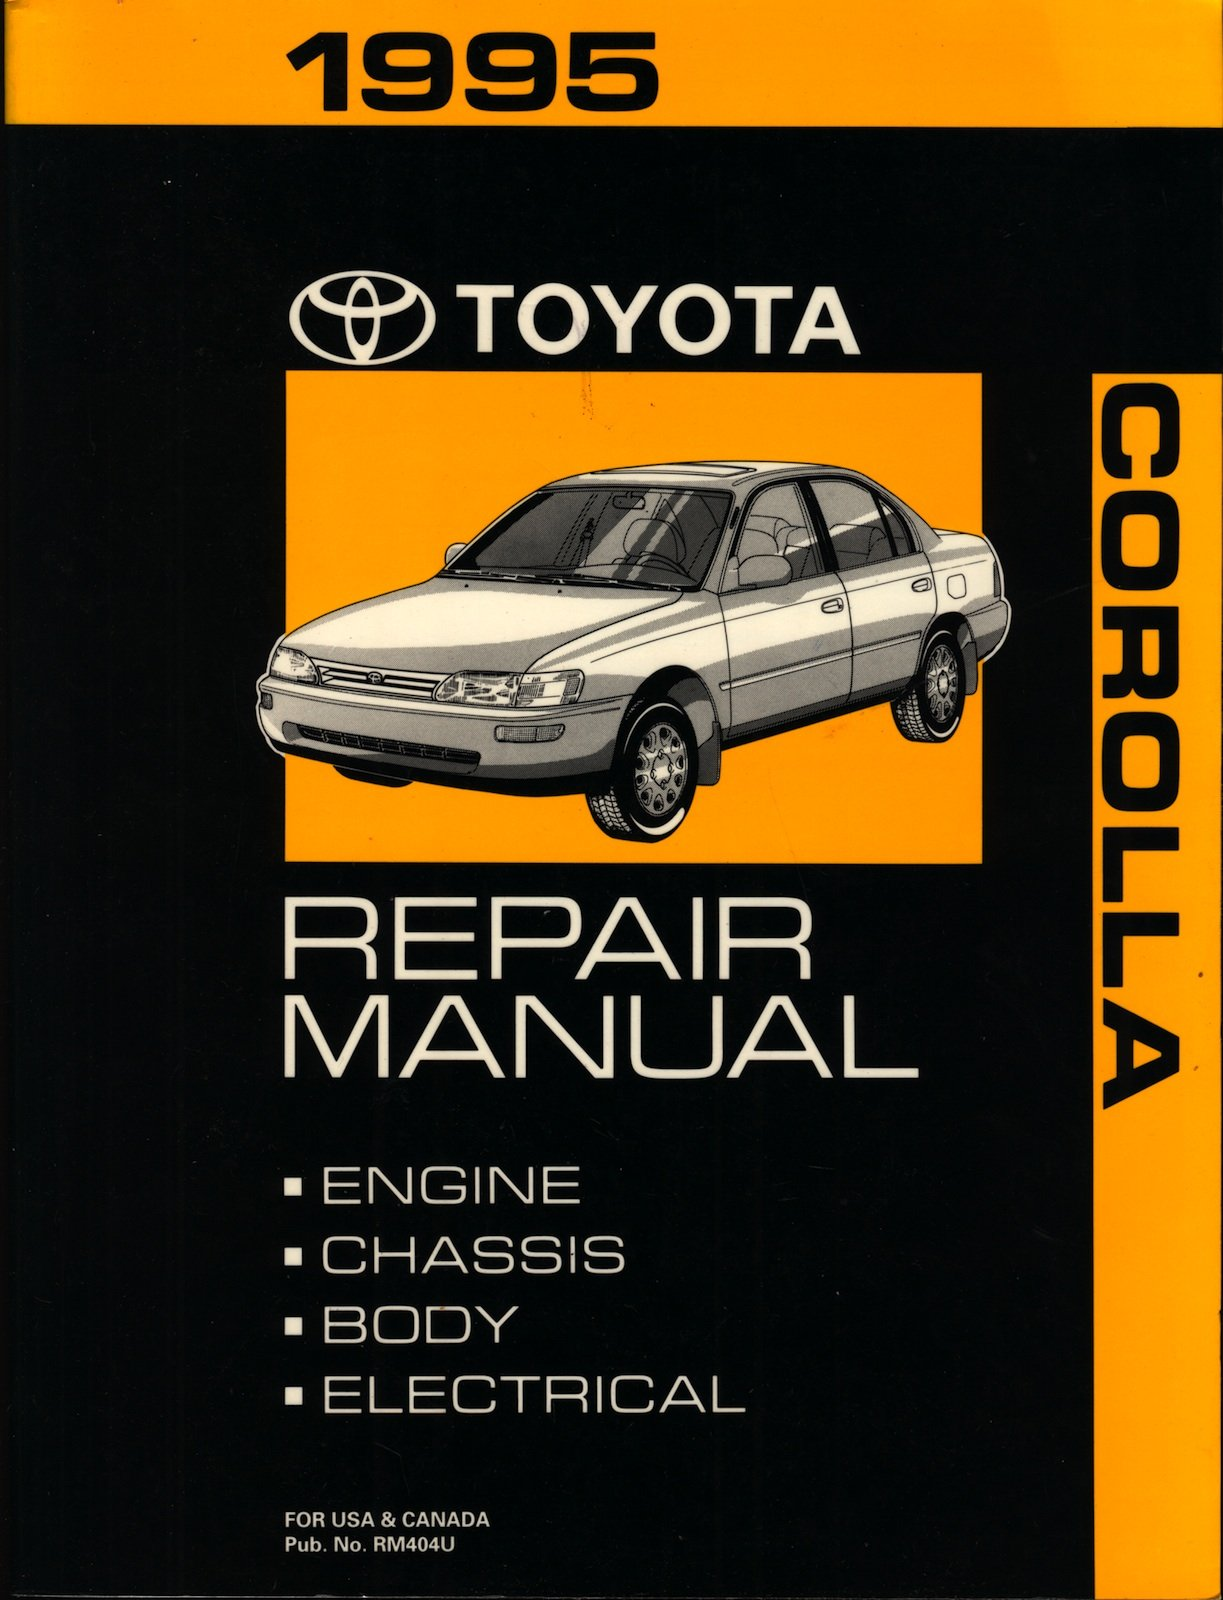 1994 Toyota Corolla Wiring Diagram Manual Original Circuit Land Rover Lr3 2005 Diagrams 1995 Repair Amazon Com Books 2006